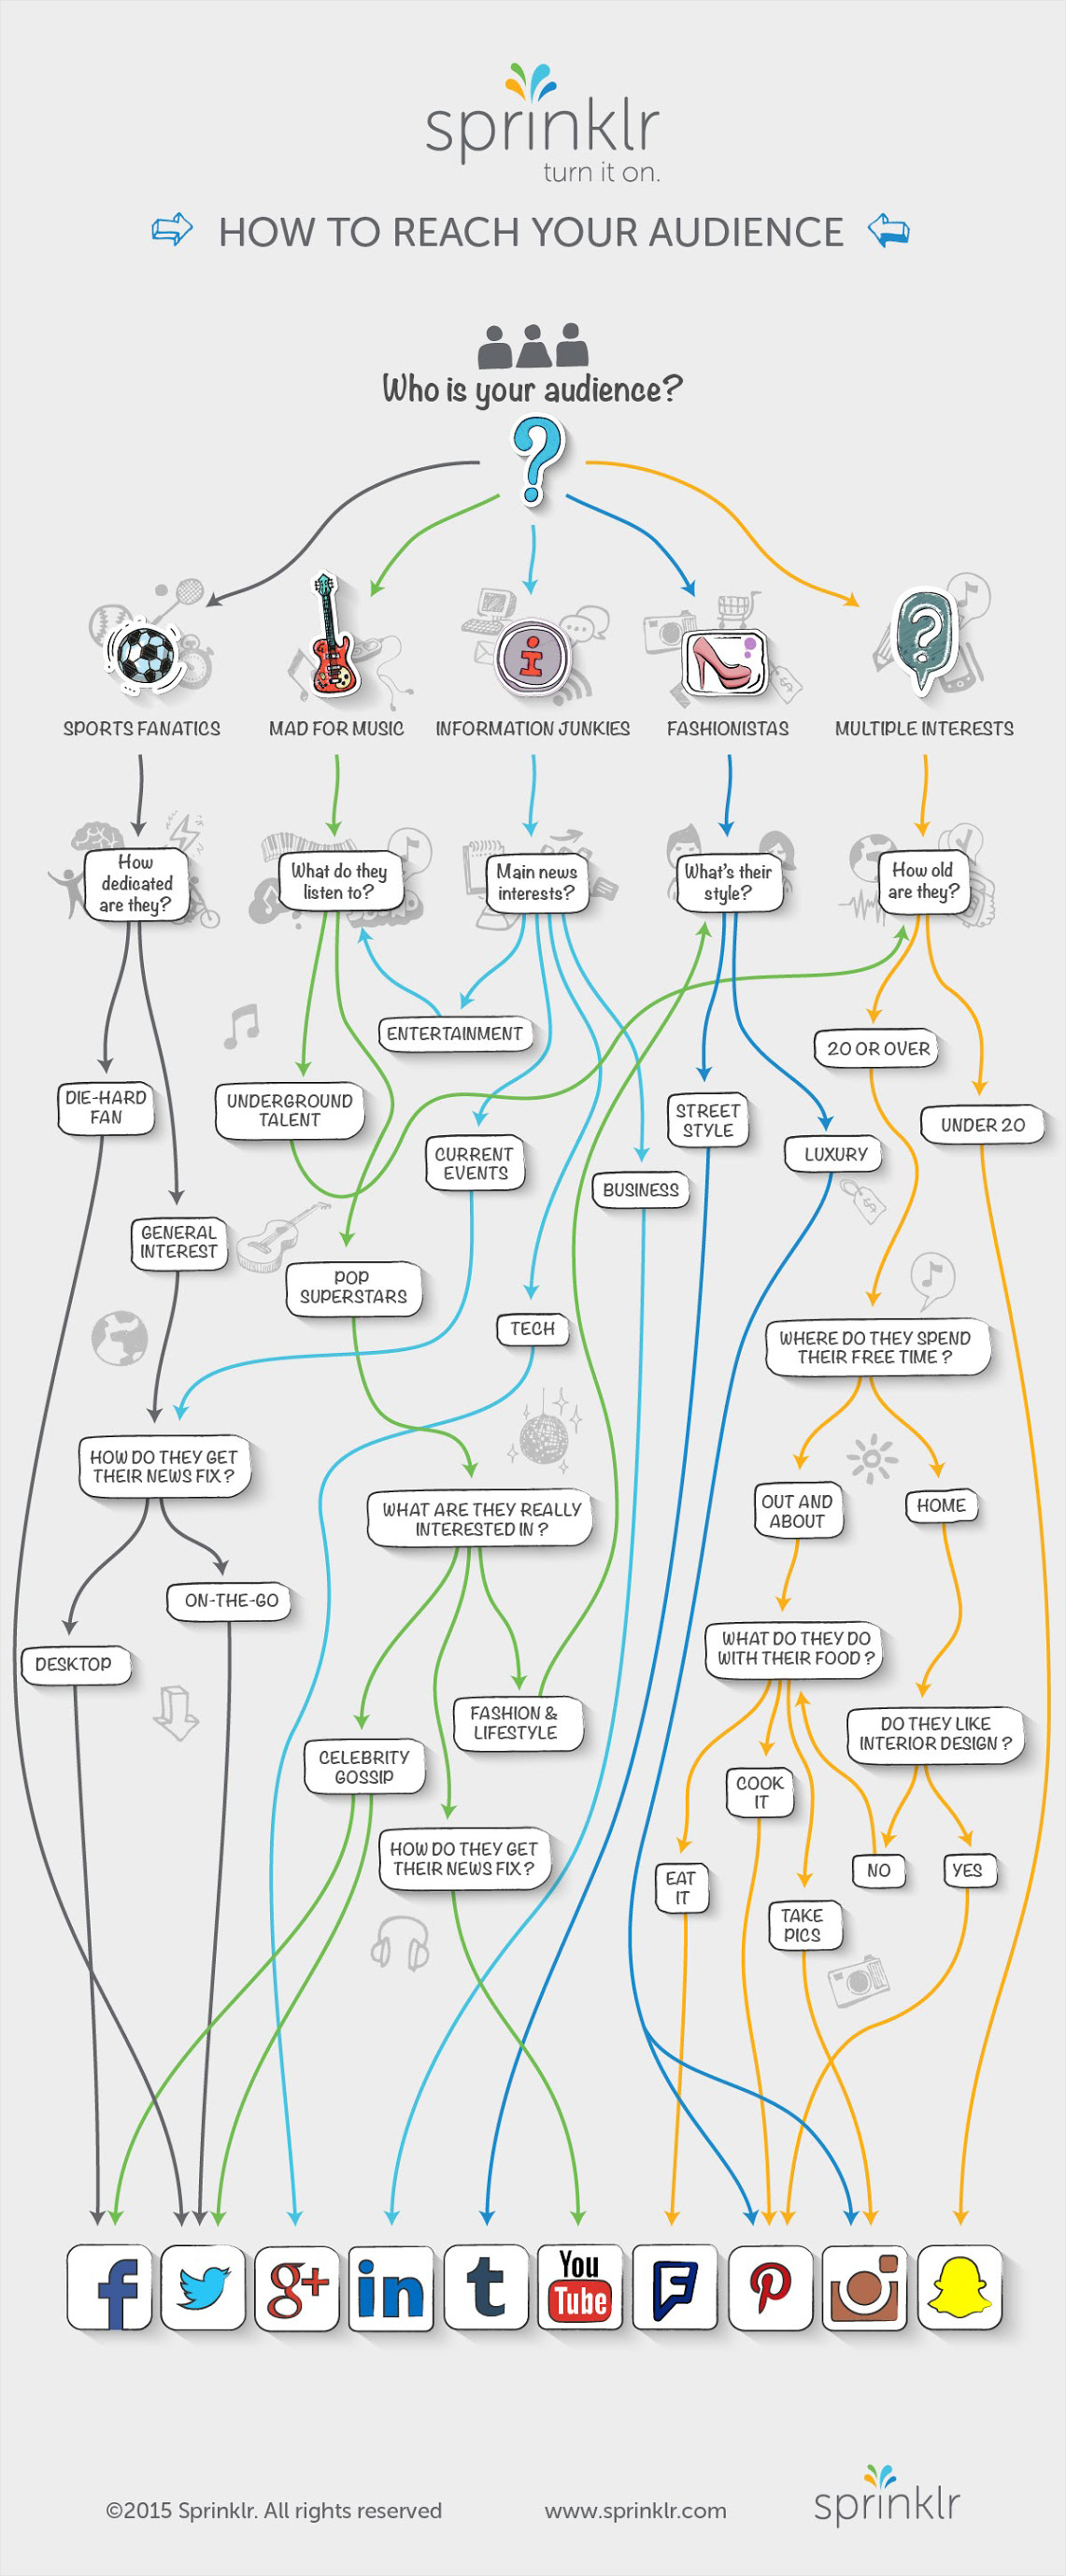 21-Creative-Flowchart-Examples-for-Making-Important-Life-Decisions-Use-Creative-Paths